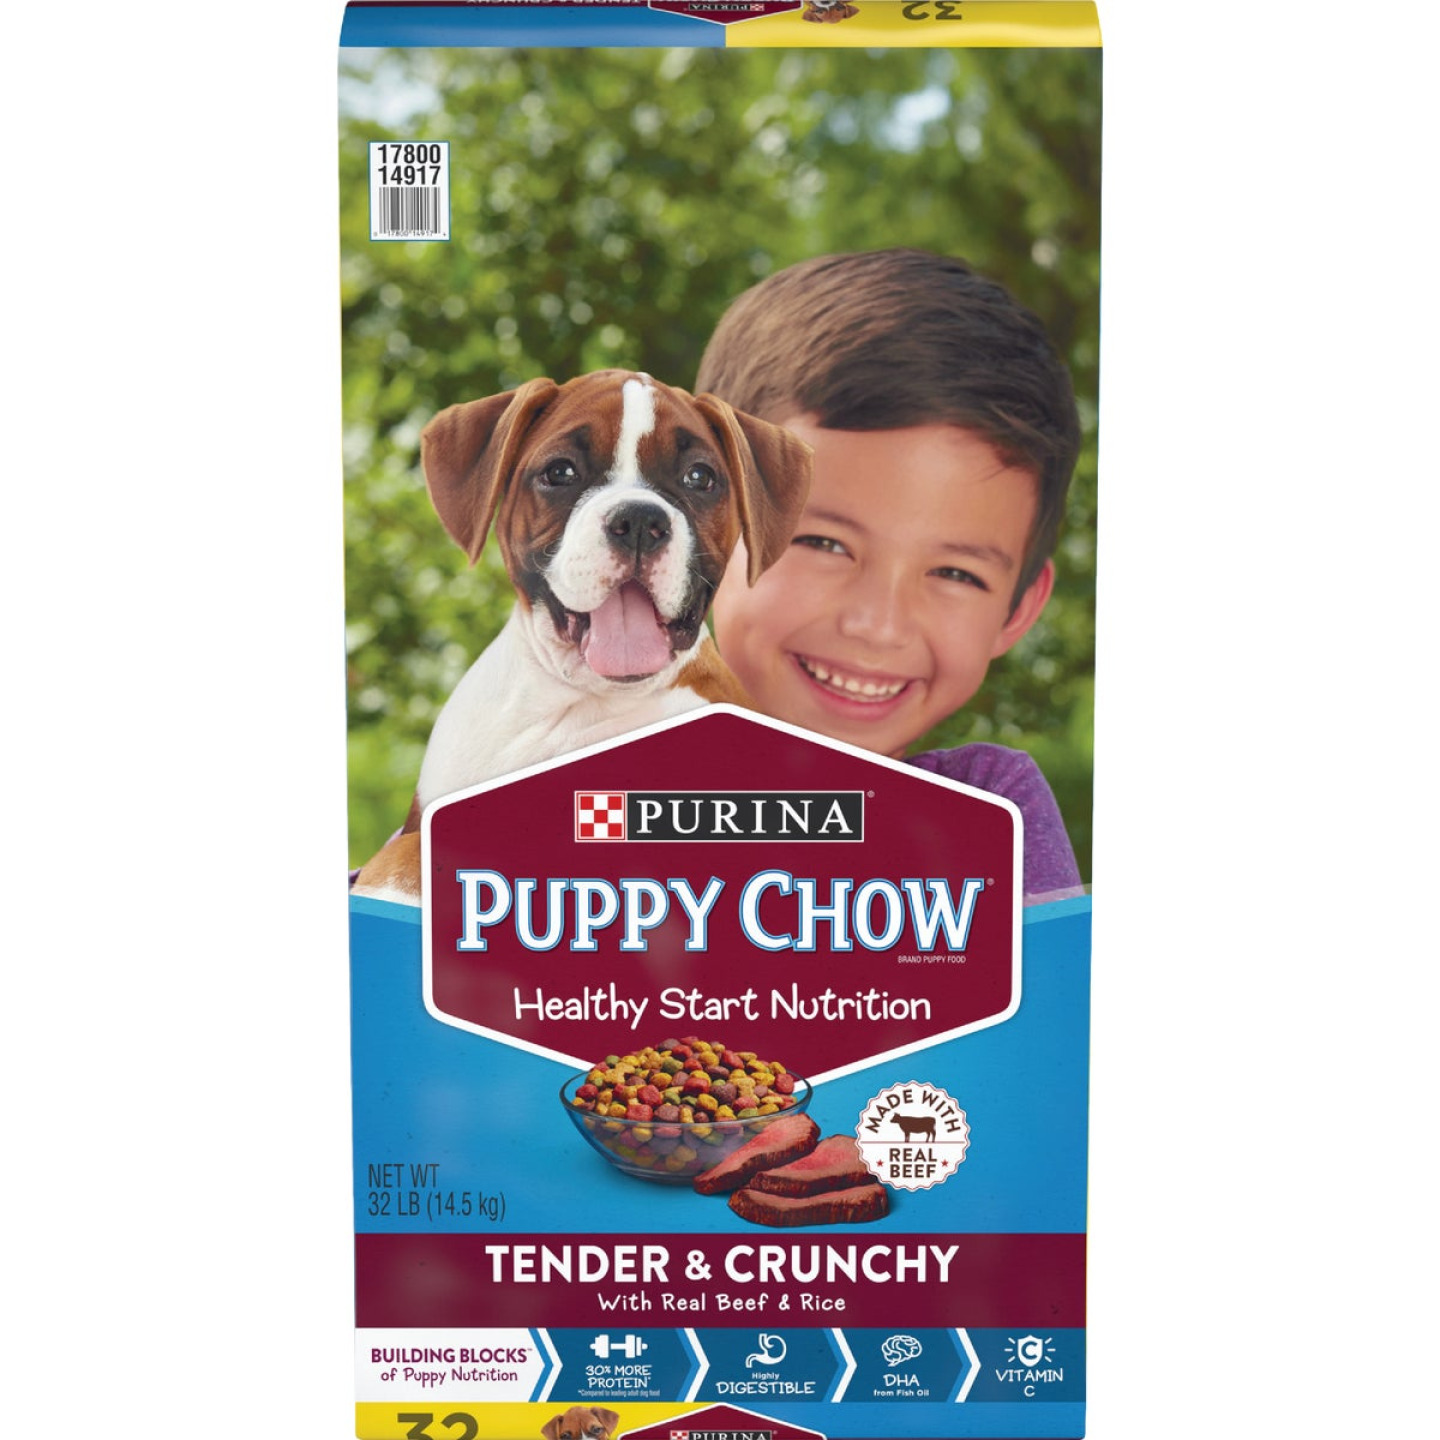 Purina Puppy Chow Healthy Morsels 32 Lb. Beef Flavor Dry Puppy Food Image 1